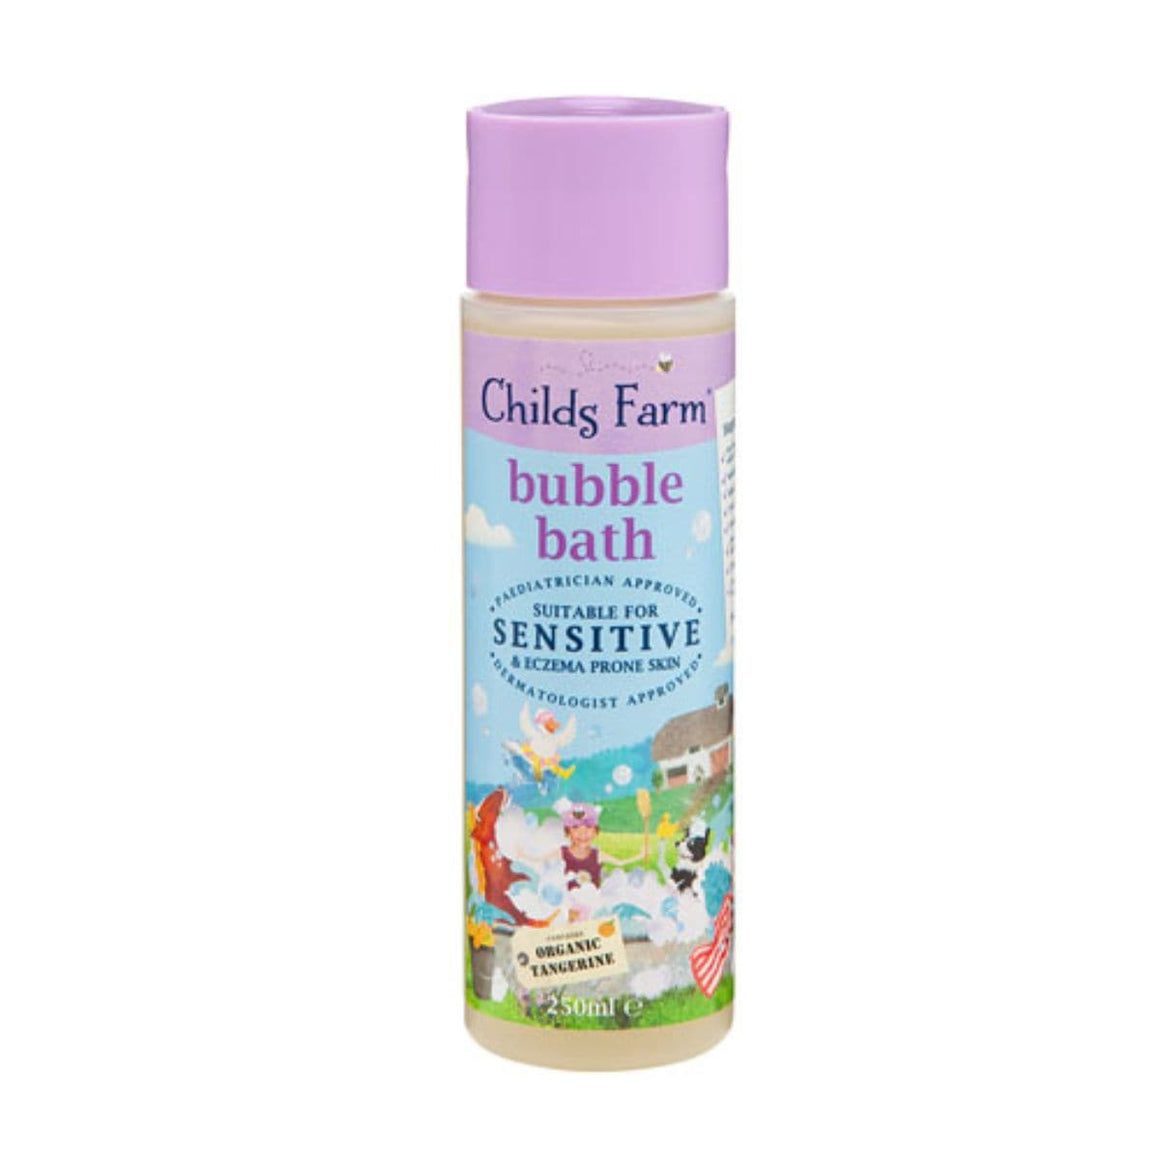 Childs Farm Organic Tangerine Bubble Bath 250ml - SoulBia